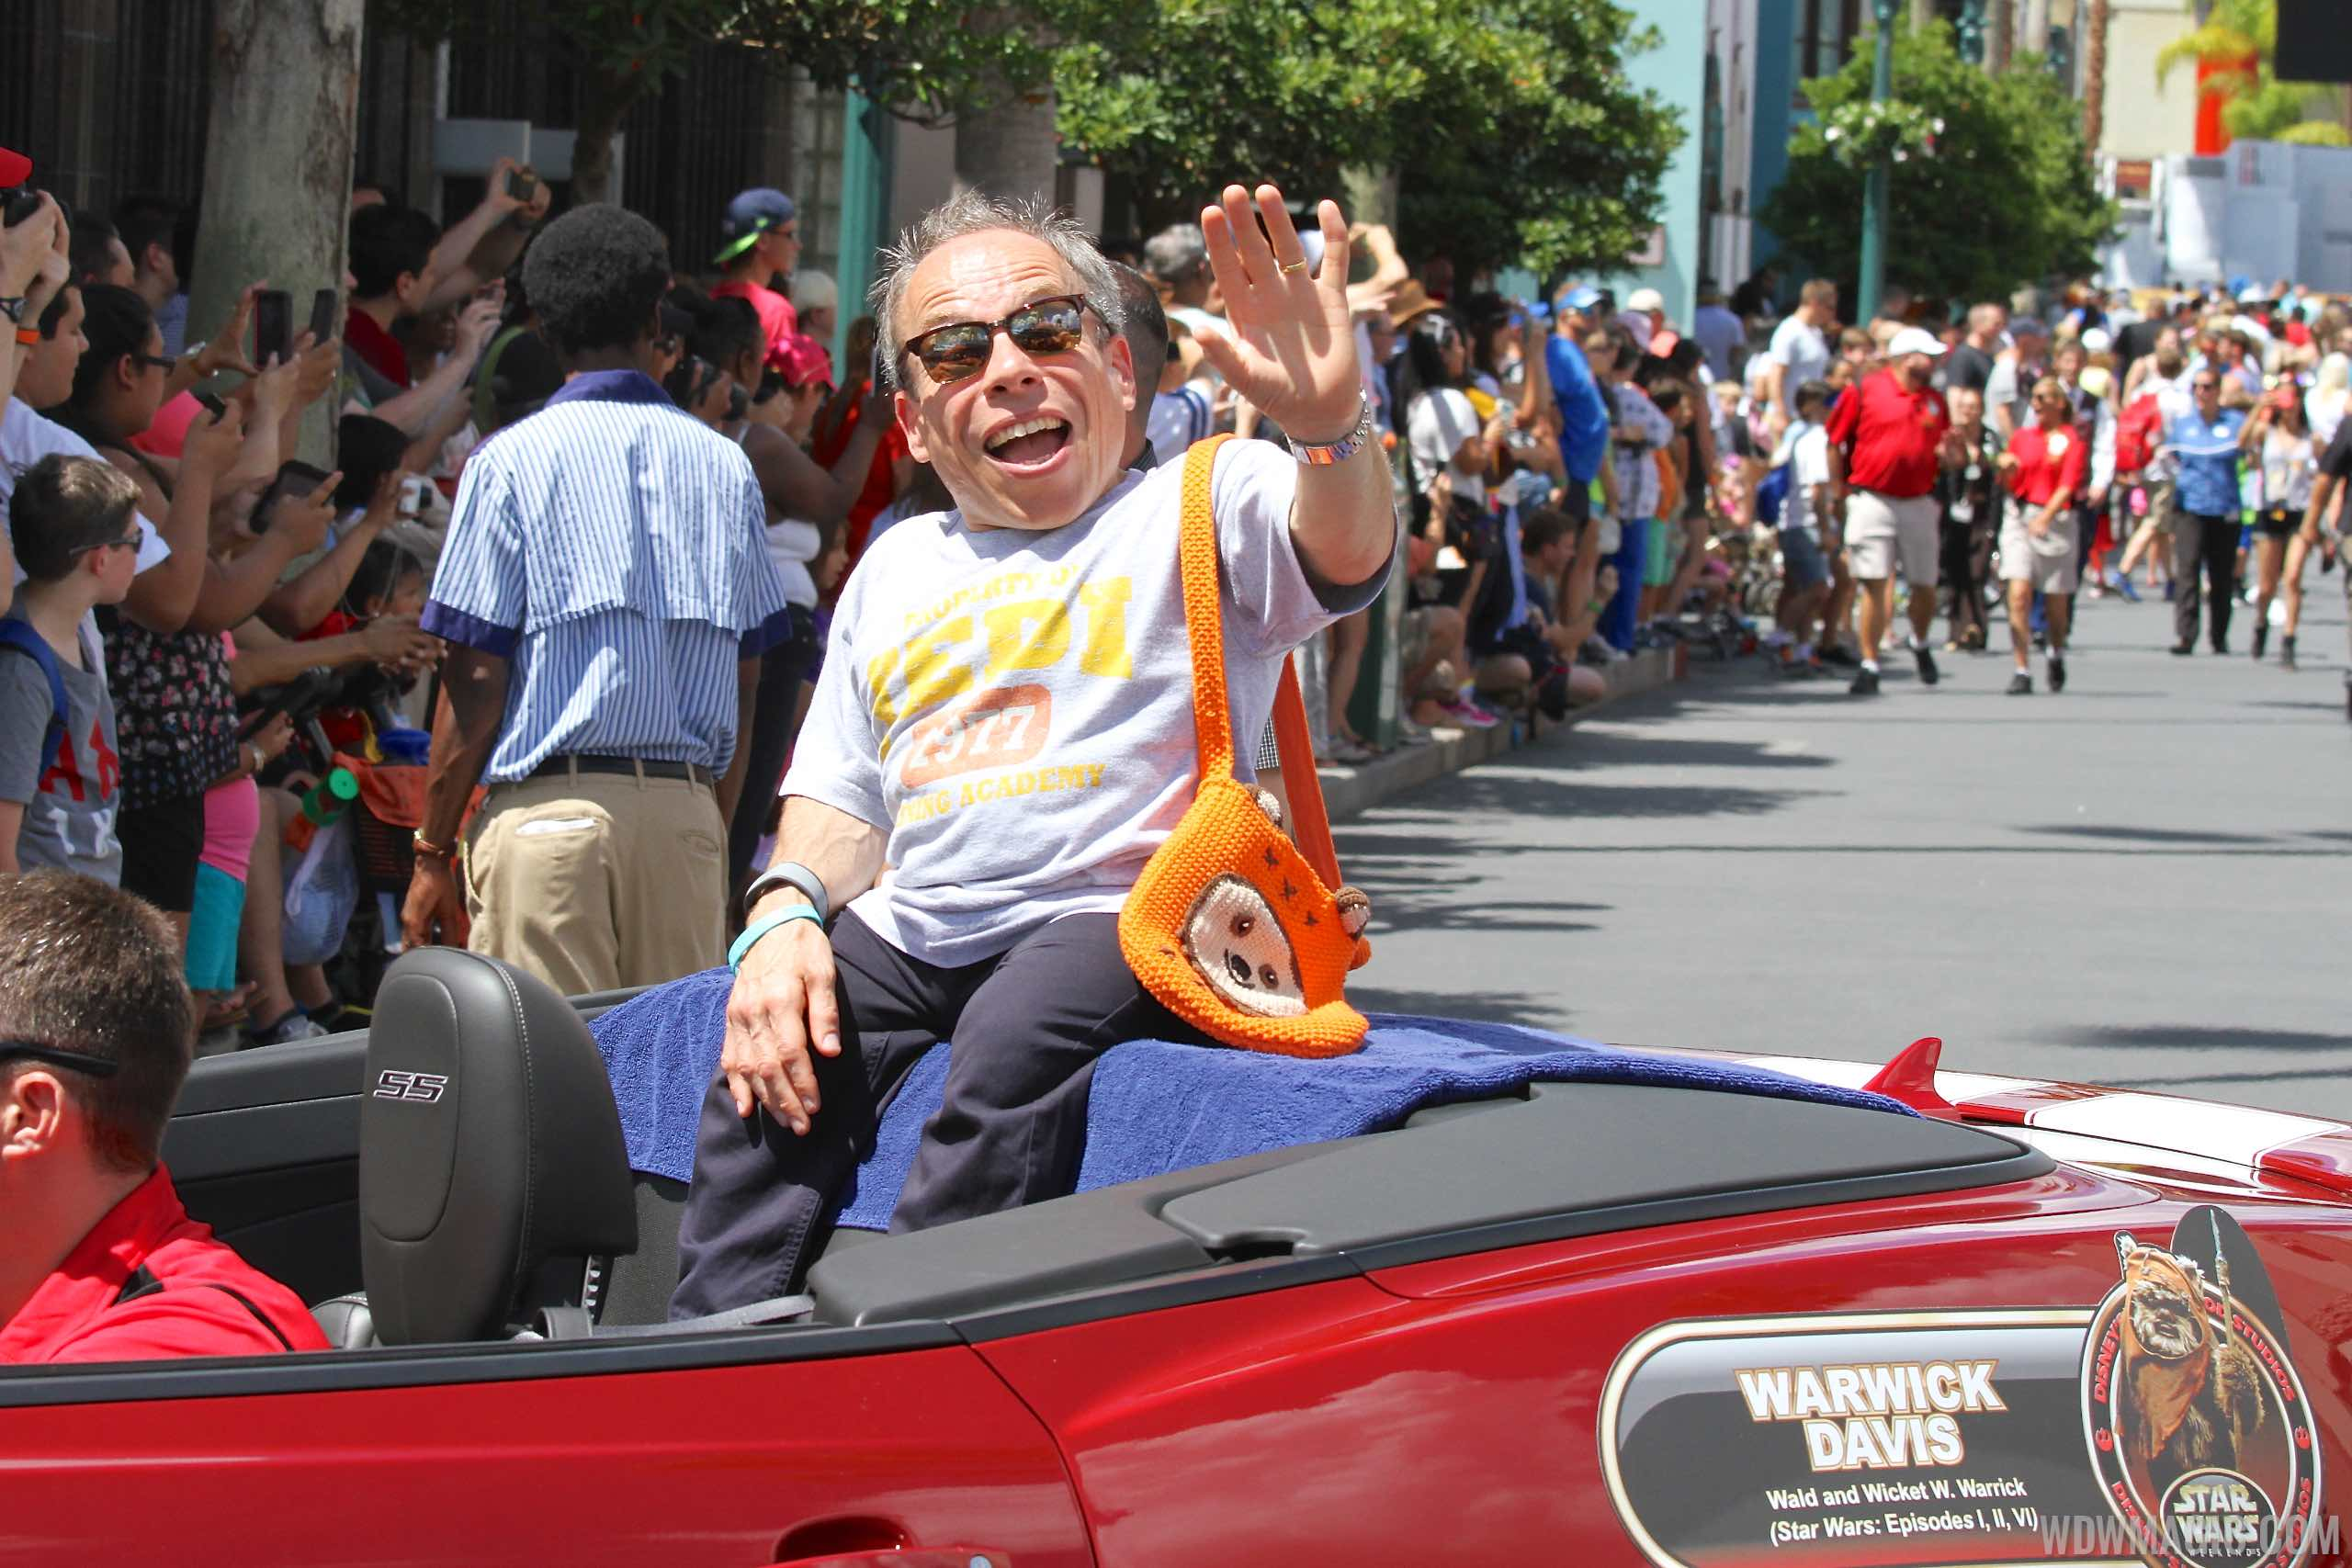 2015 Star Wars Weekends - Weekend 3 Legends of the Force motorcade celebrities - Warwick Davis